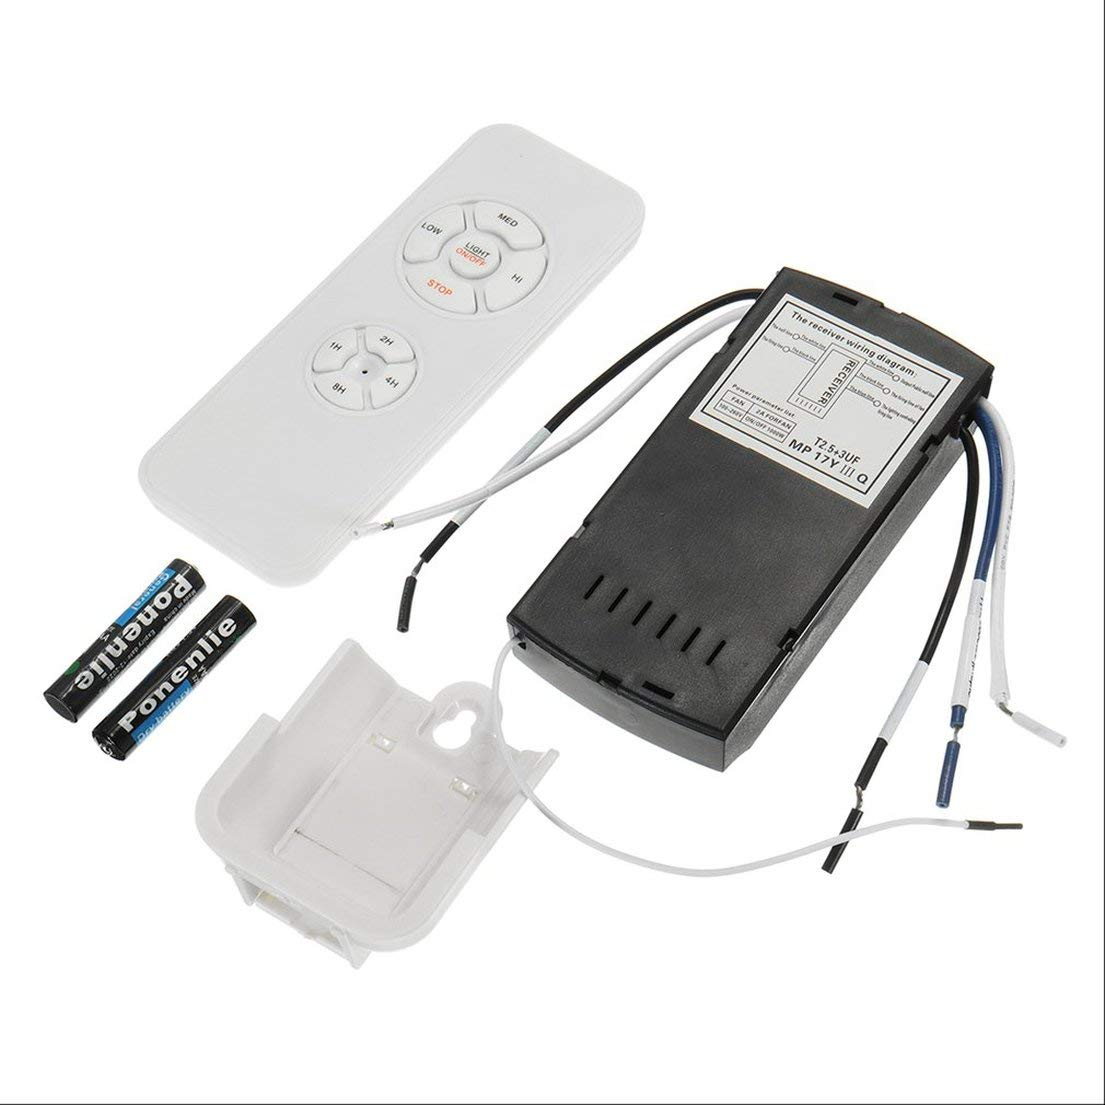 Universal Ceiling Fan Lamp Remote Control Kit 110-240V Timing ... on ceiling fan schematic, ceiling fan receiver wiring, ceiling fan wiring blue wire, ceiling fan remote stopped working, ceiling fan control module, ceiling fan winding diagram, ceiling fan light repair parts, ceiling fan electrical diagram, ceiling fan wall remote, ceiling fan connection, ceiling fan wiring colors, ceiling fan with two switches wire diagram, ceiling fan remote controls, ceiling fan speed control wiring, ceiling fan remote battery, ceiling fan remote repair, ceiling fan circuit, ceiling fan electrical wiring, ceiling fan parts diagram, ceiling fan switch,